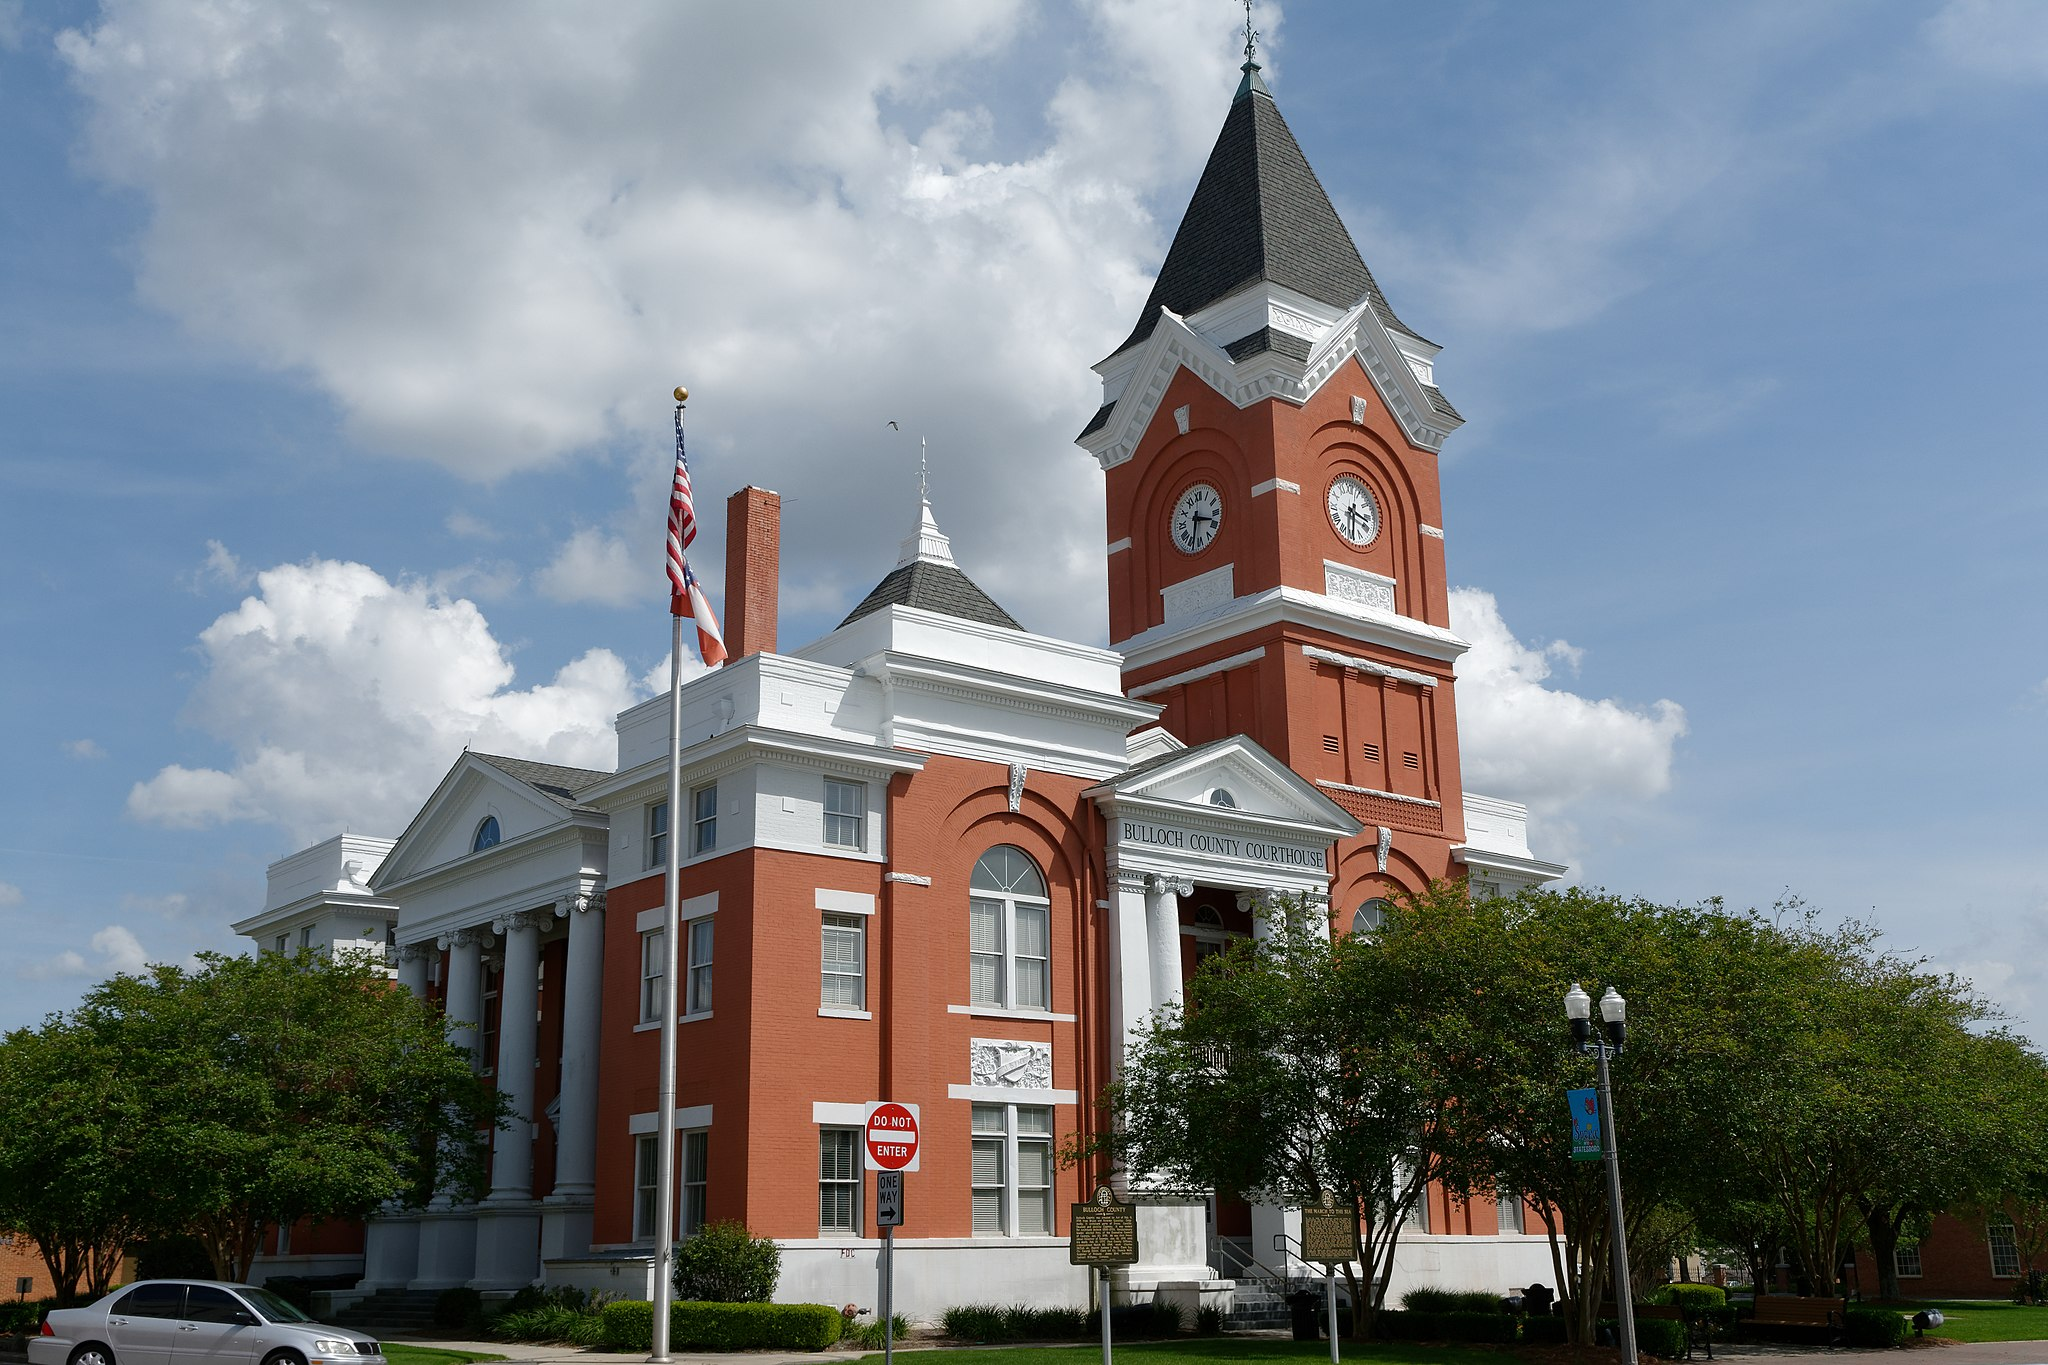 Bulloch County Courthouse, Statesboro, GA, US